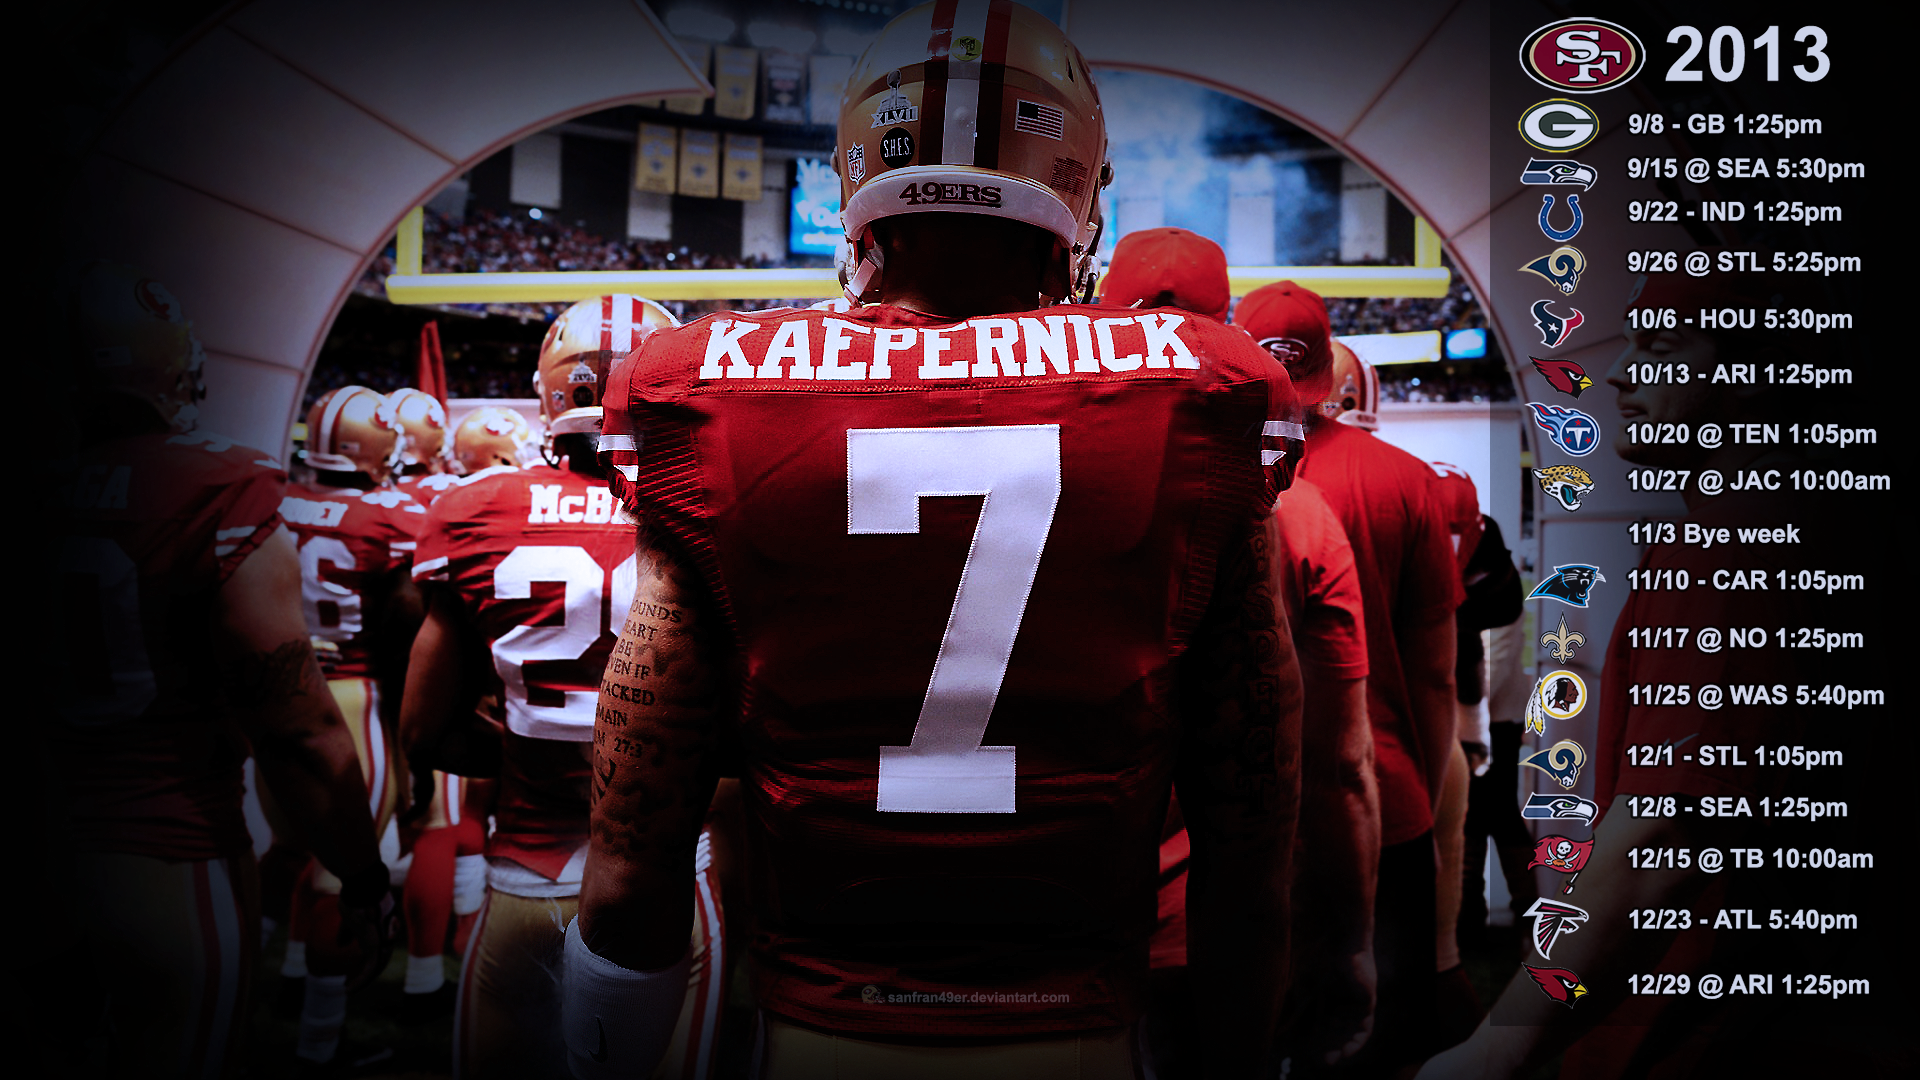 Awesome 49ers wallpaper impremedia 49ers wallpaper thread voltagebd Choice Image